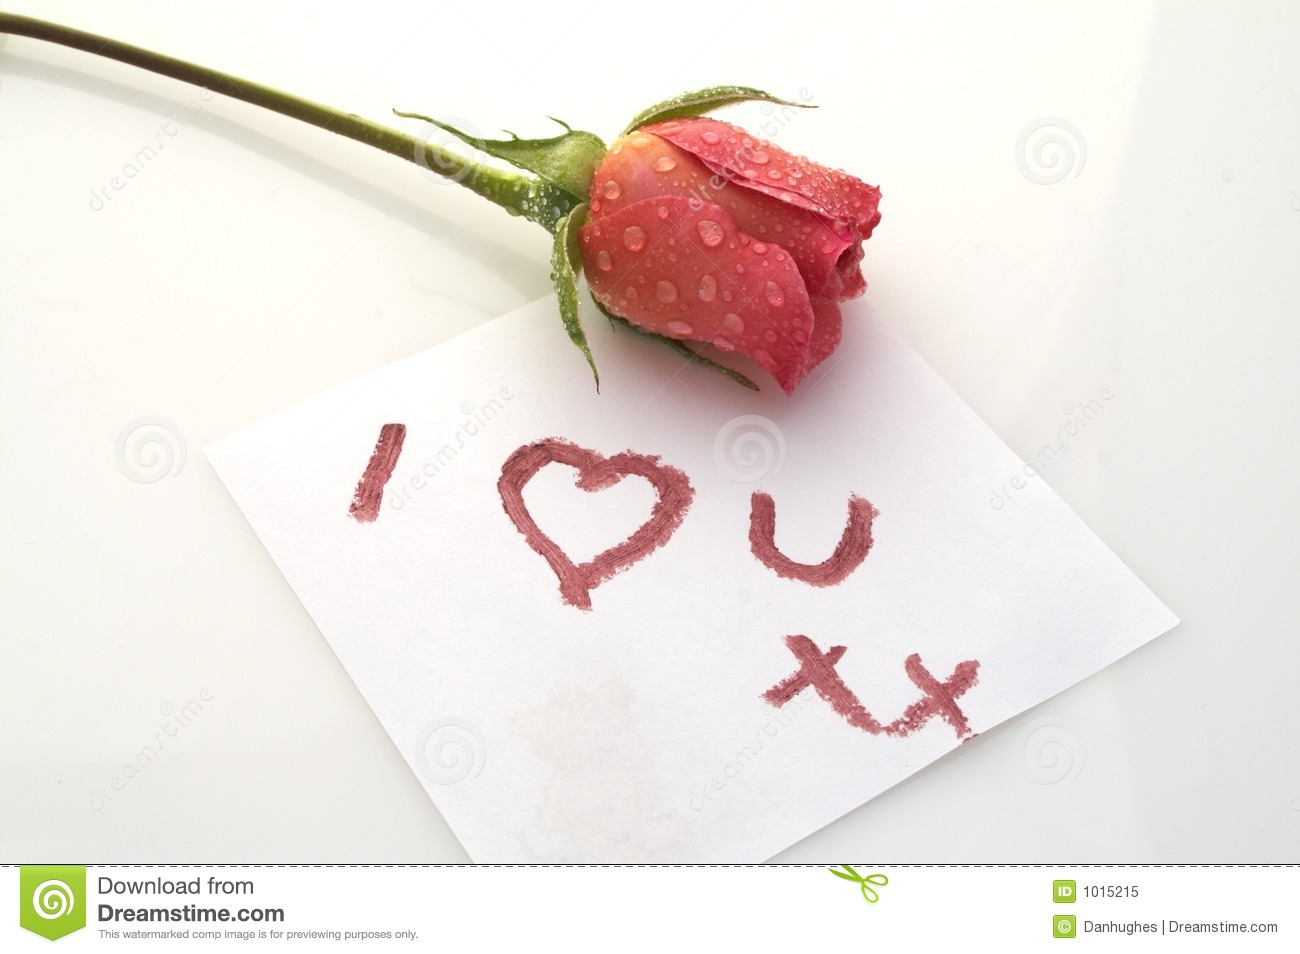 Love You Rose Royalty Free Stock Photo - Image: 1015215